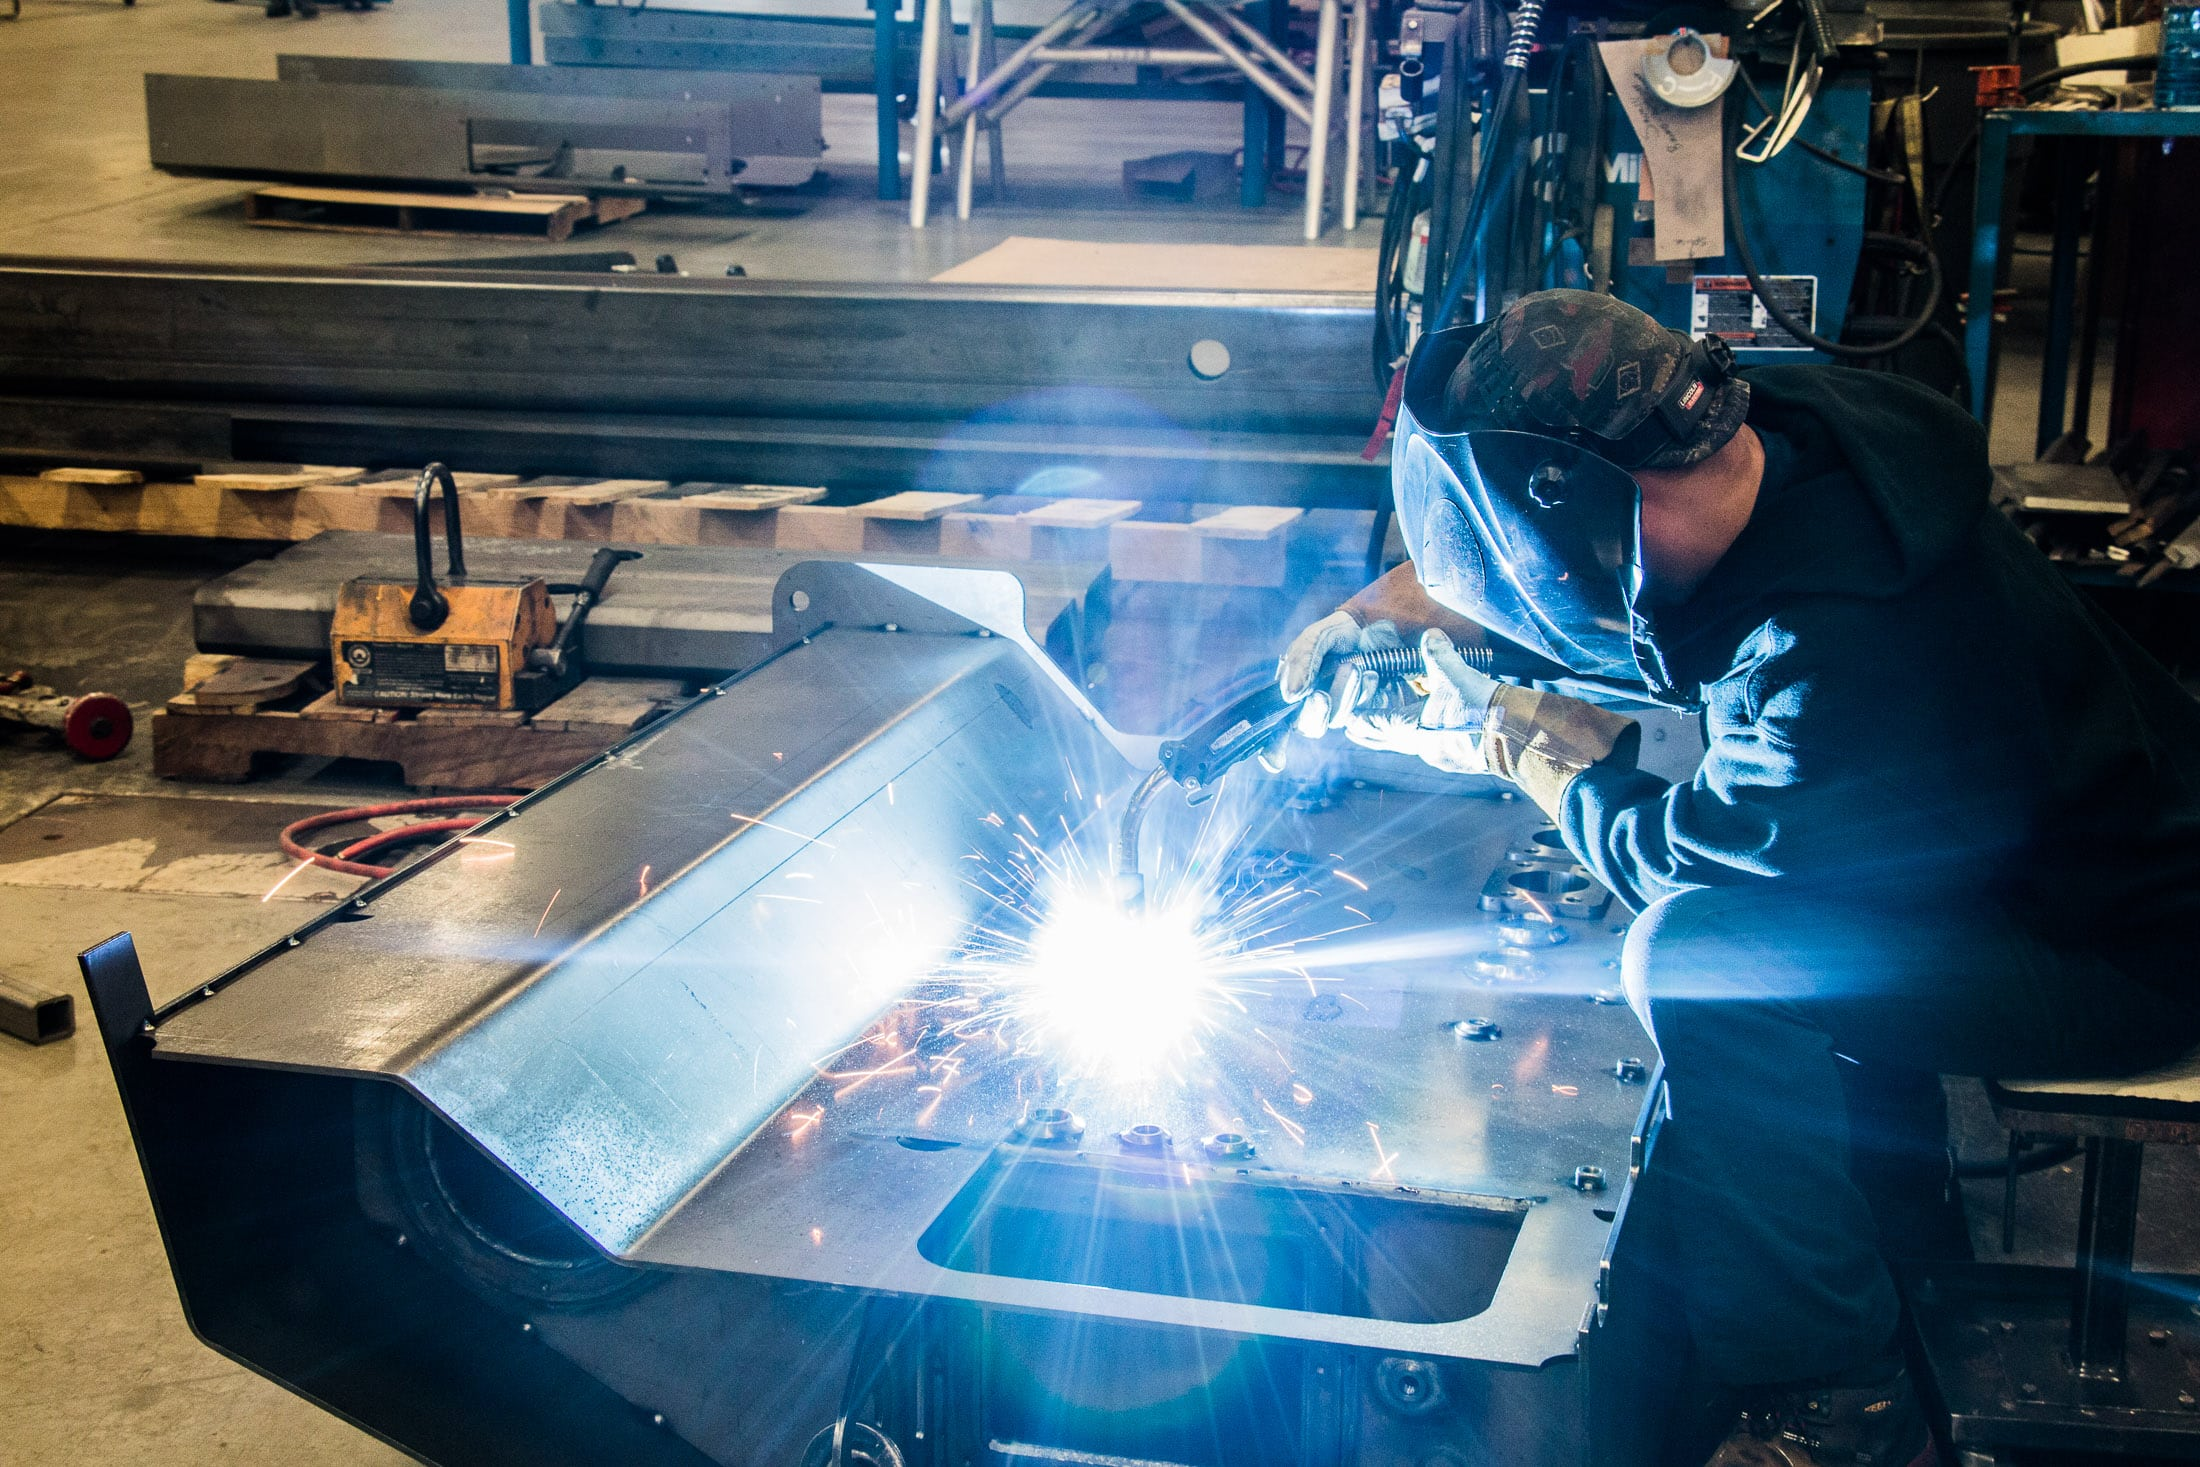 California Industrial Rubber, Inc Offers Custom Conveyor Belt, Fabrication and Welding Services